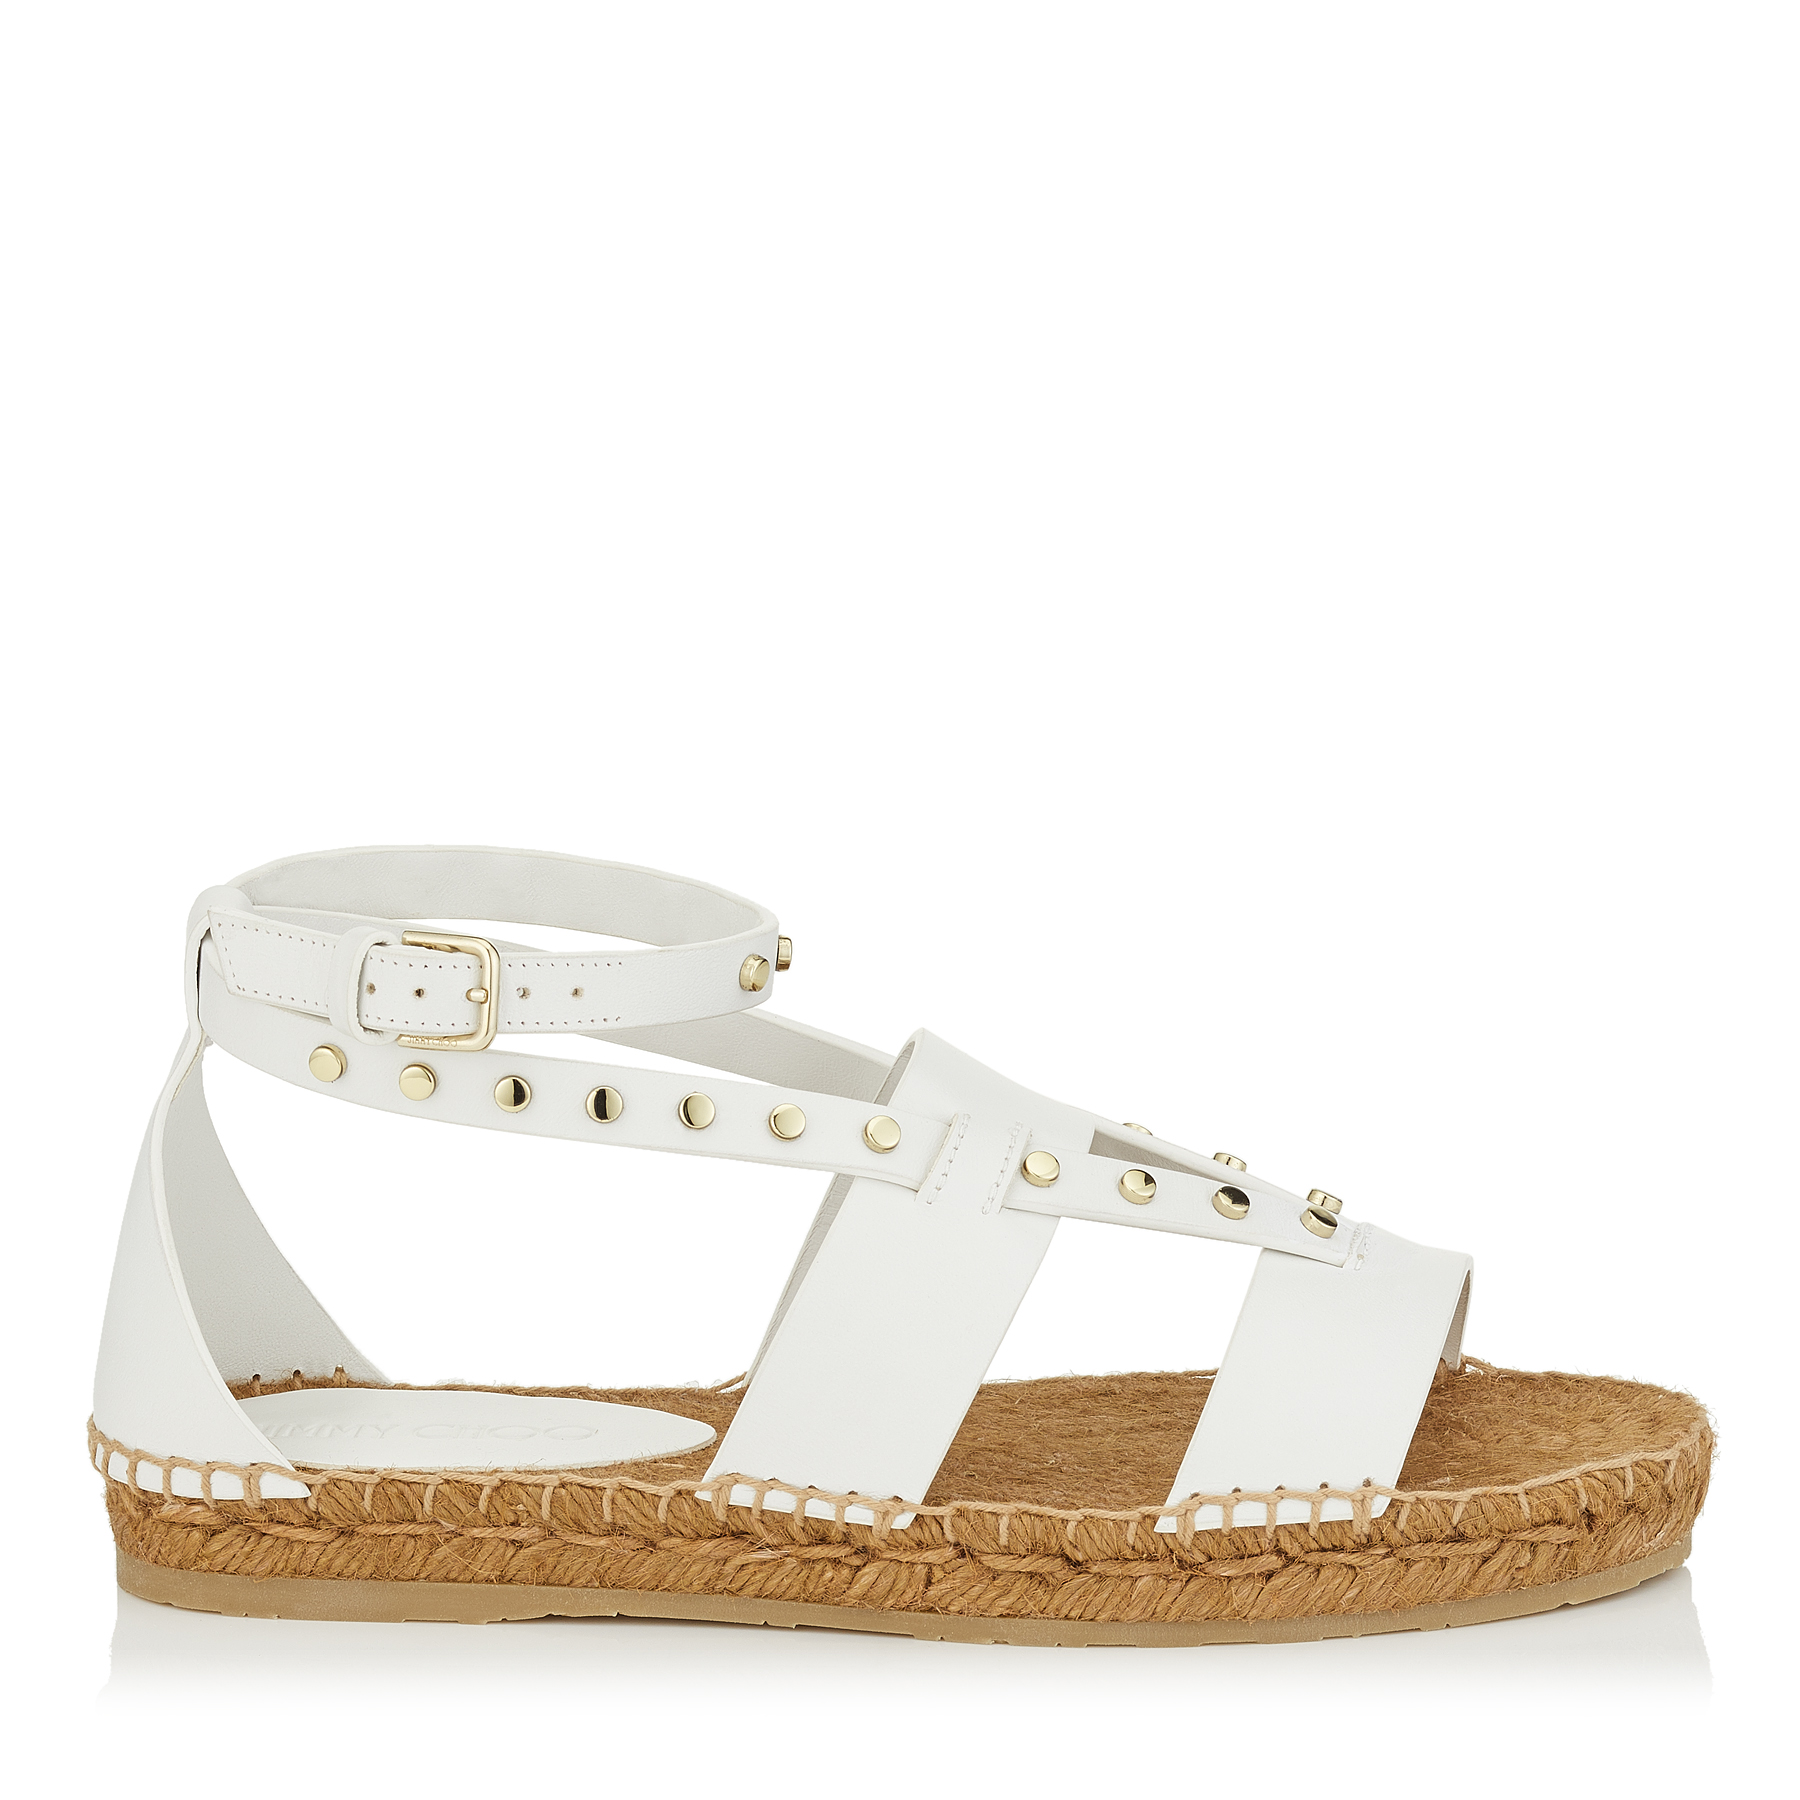 DENISE FLAT Tan Vachetta Leather Sandals with Studs by Jimmy Choo